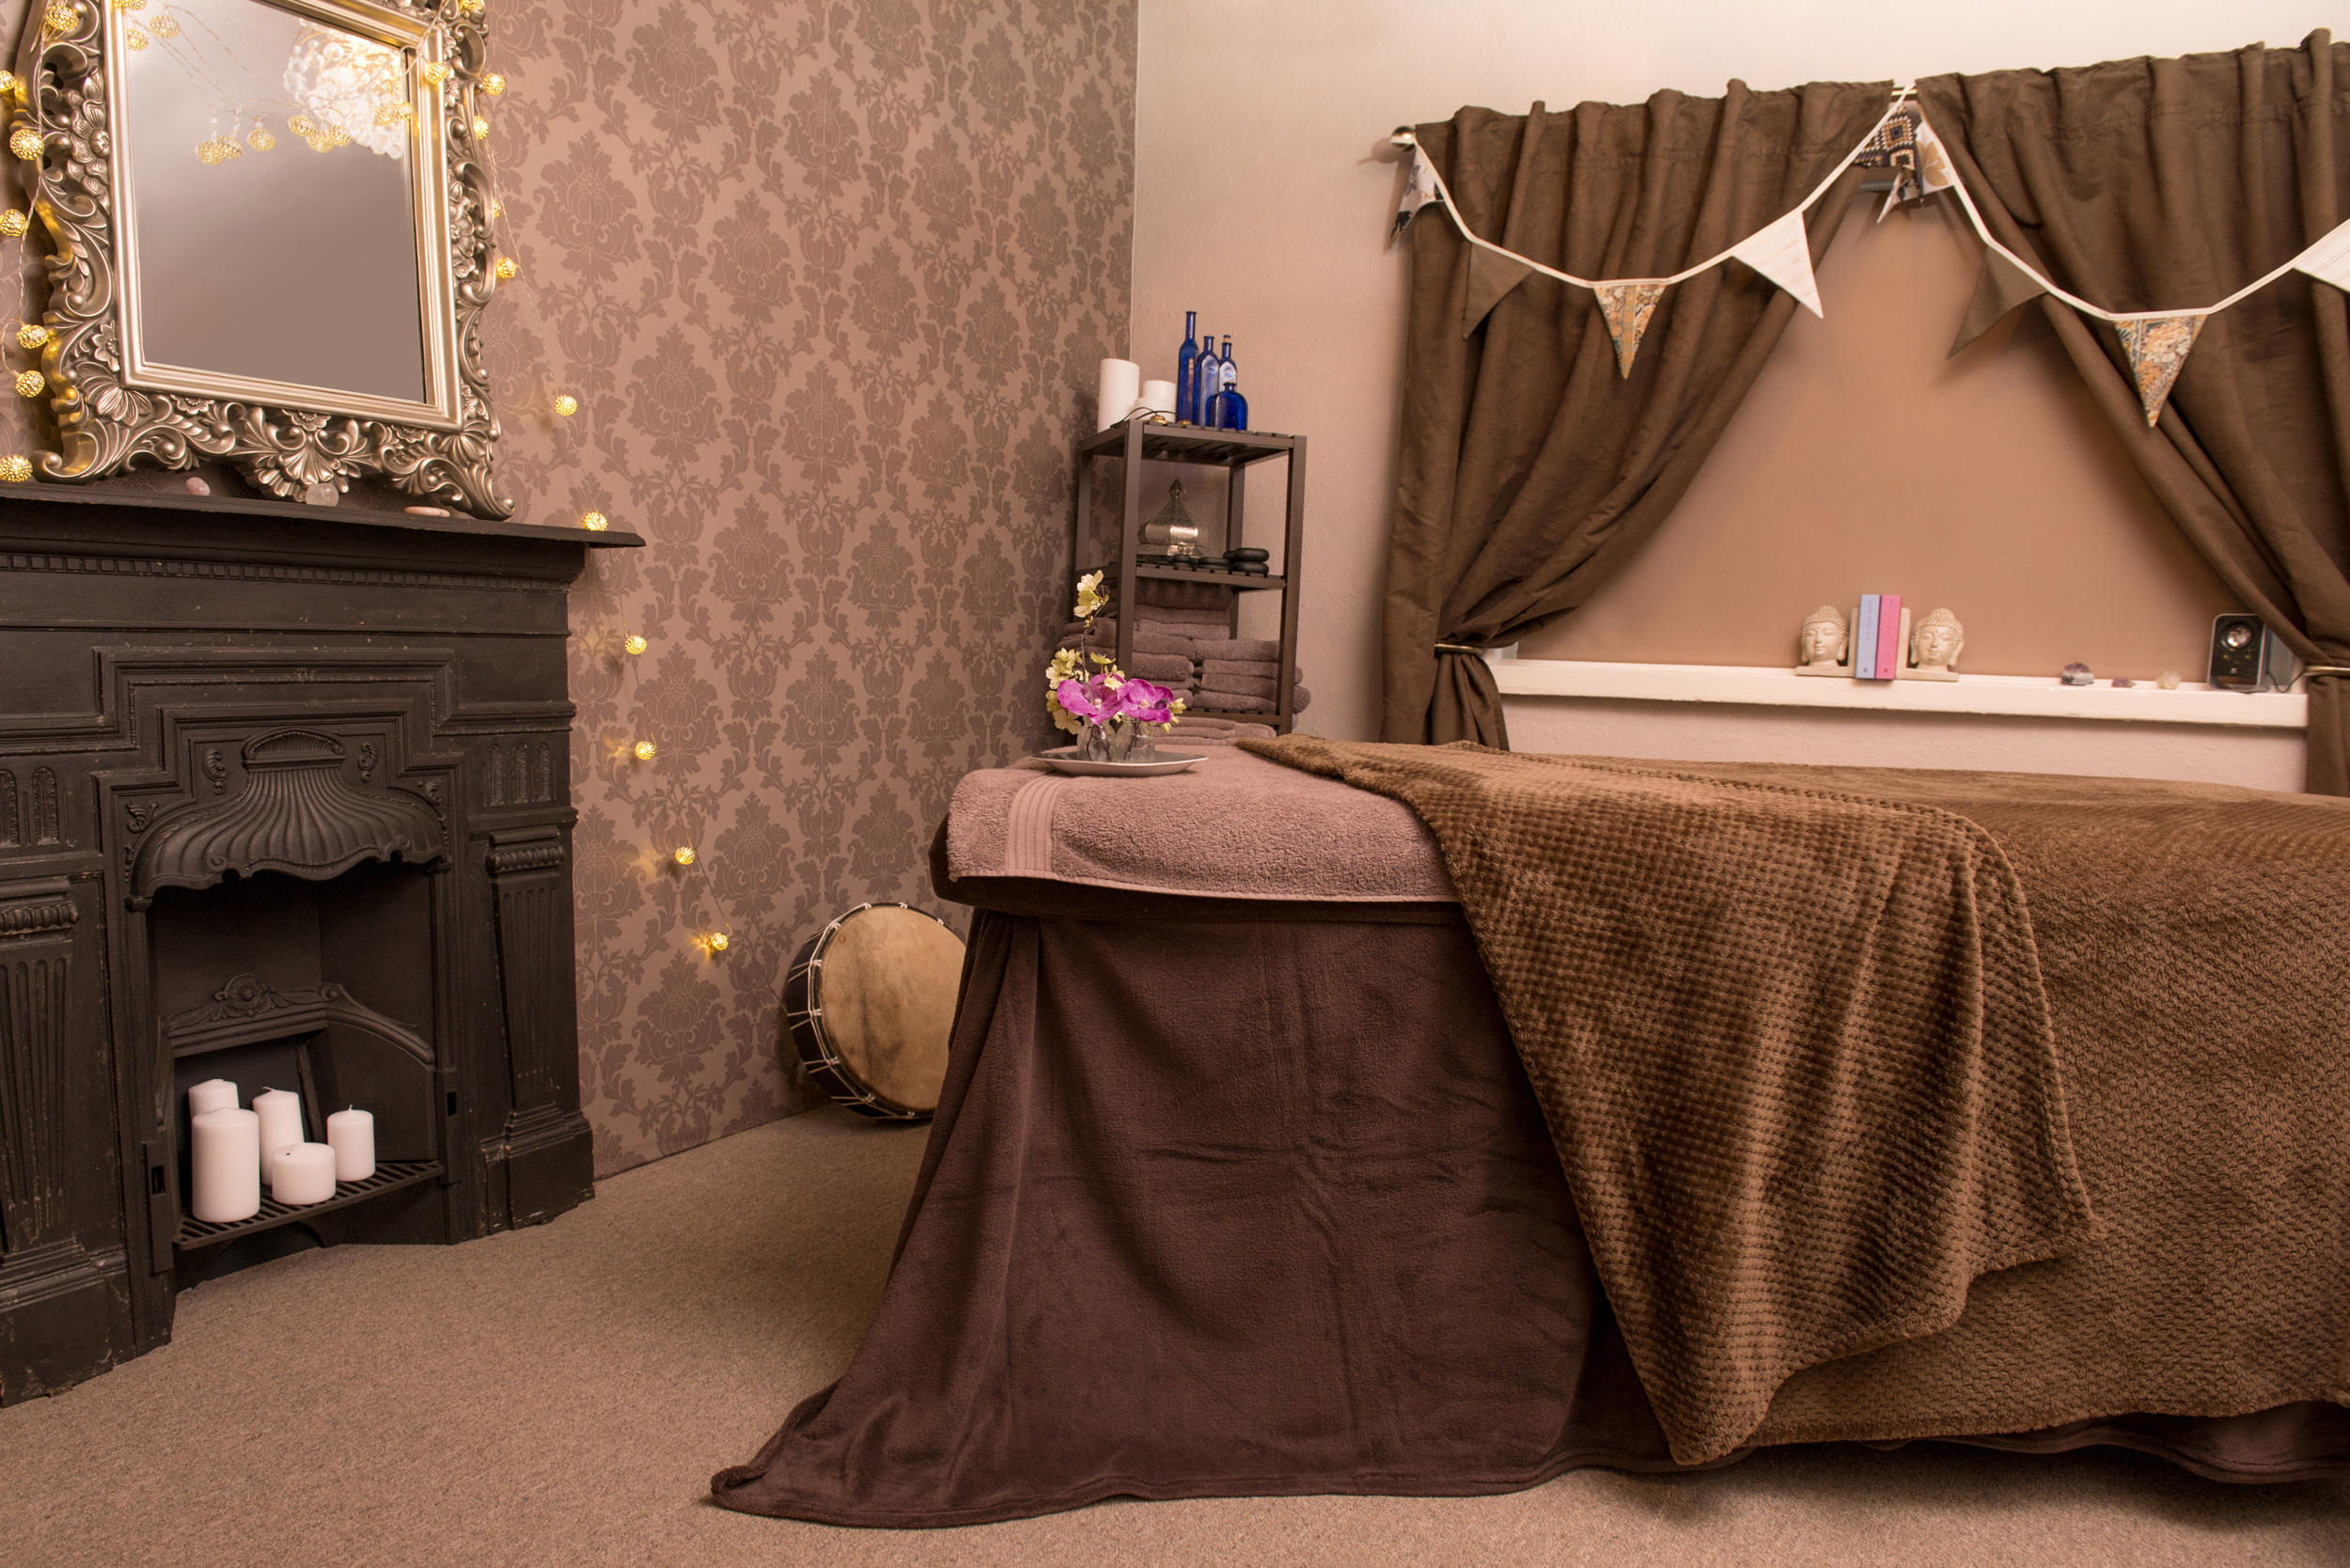 Treatments - I have aches and pains. I feel anxious and stressed. I need to take time out and look after myself moreInvest in your health and wellbeing with Massage, Reflexology, Energy Healing , Tarot & Guidance Card Reading, Facials, Meditation and Transformation Coaching